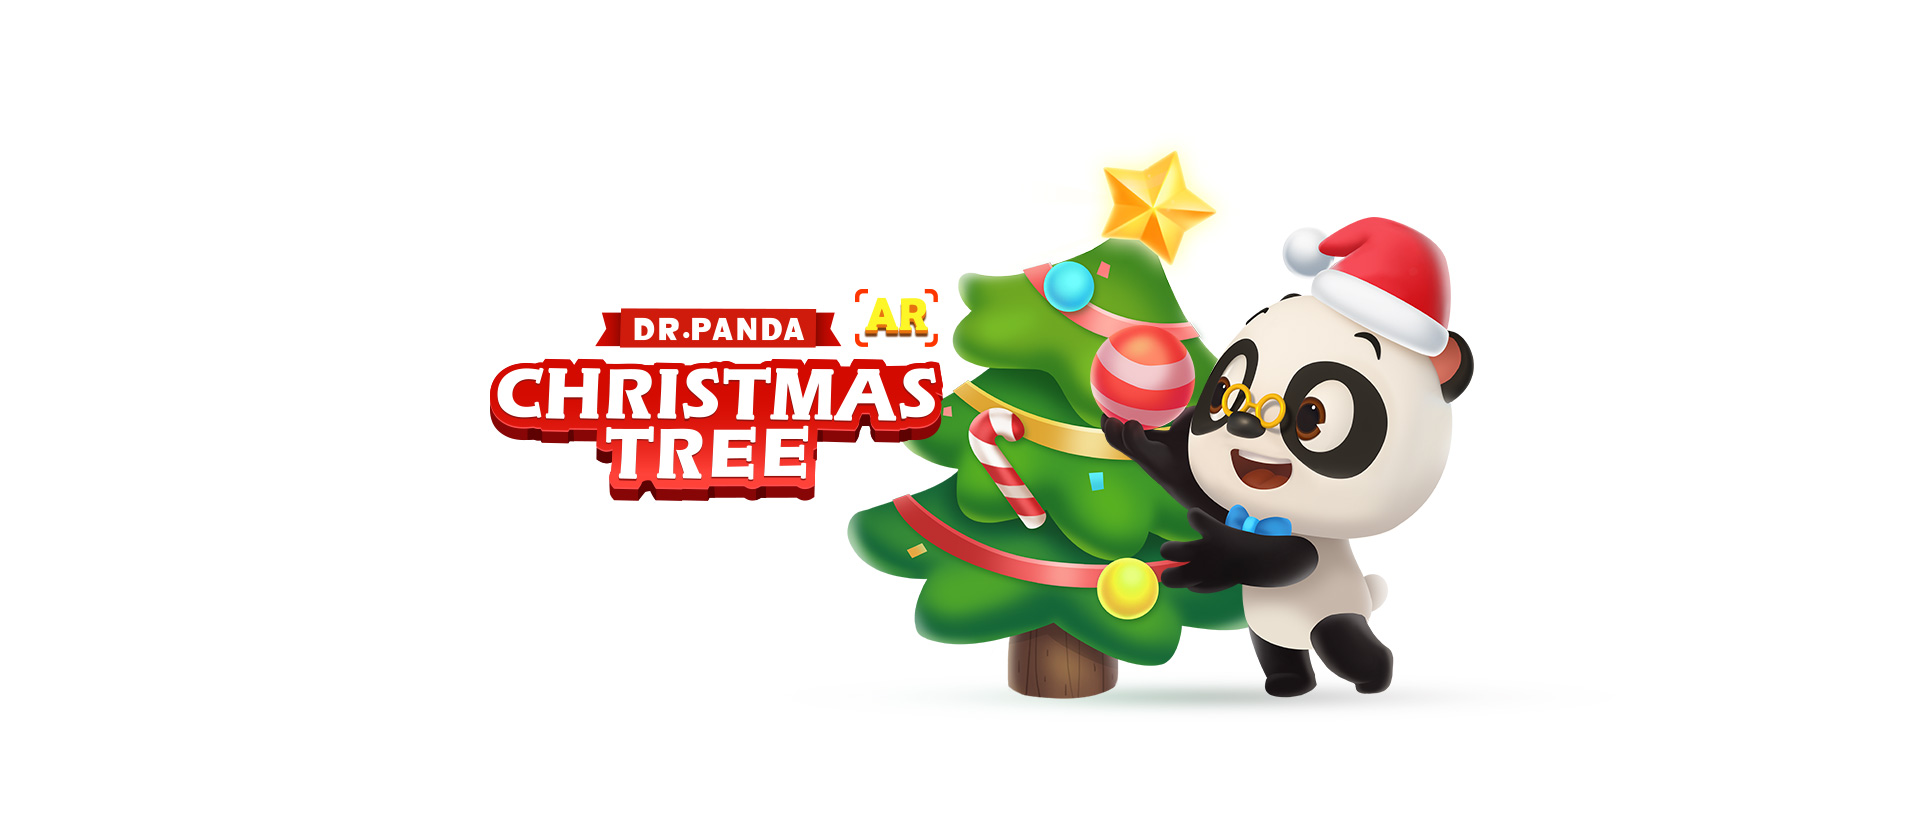 Dr. Panda AR Christmas Tree